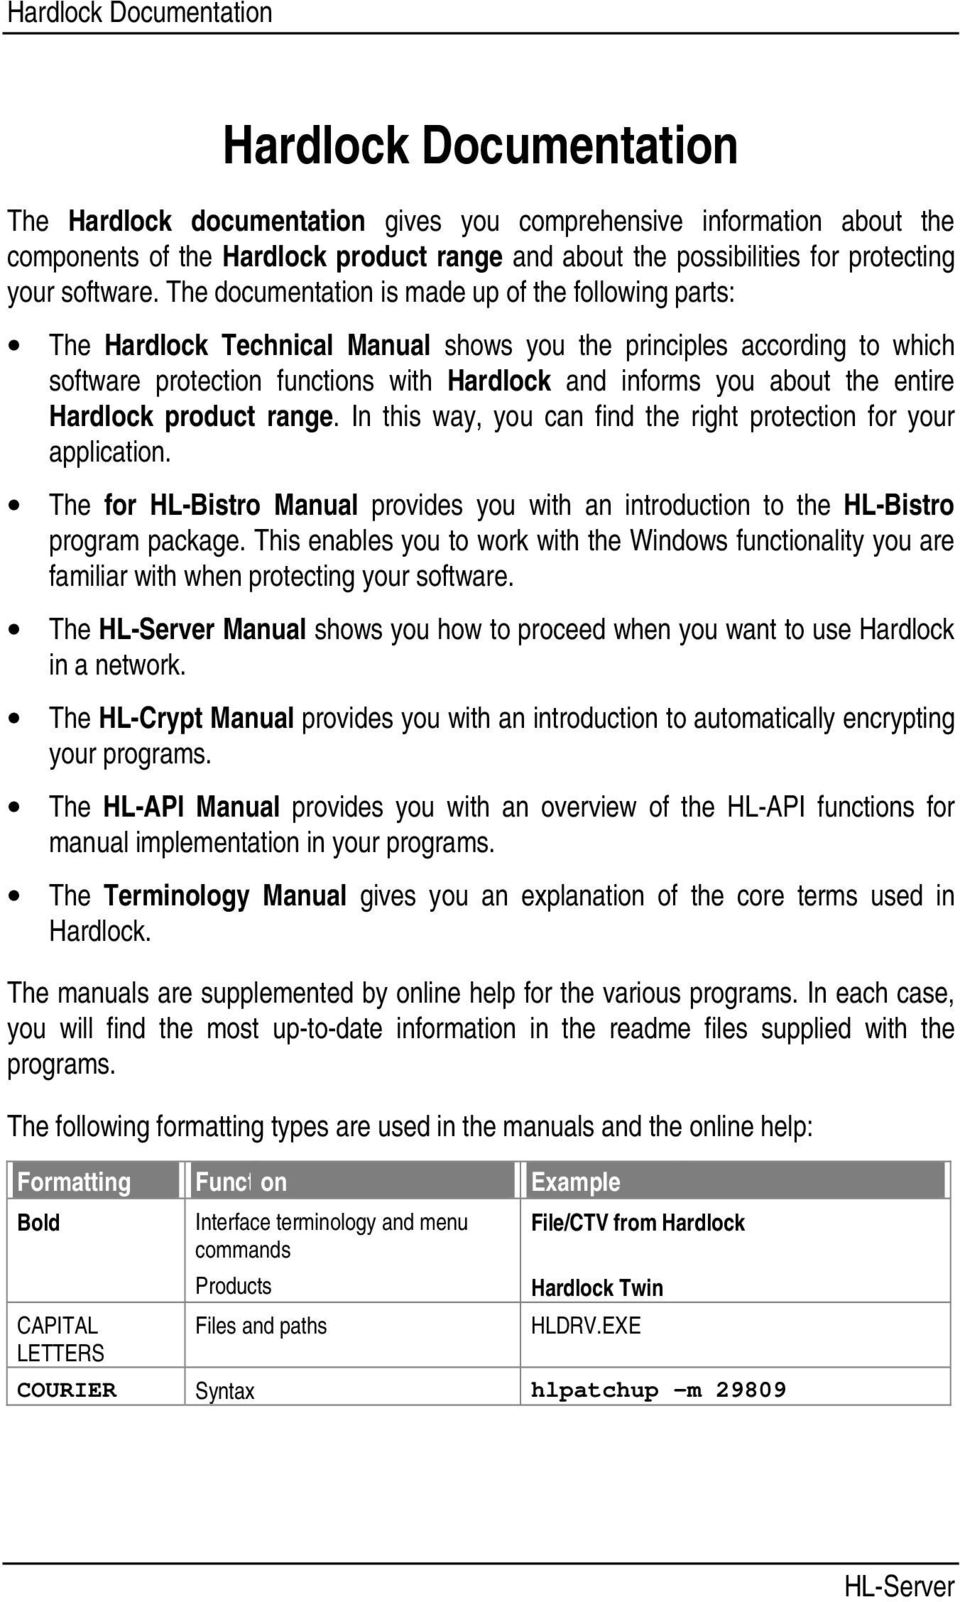 The documentation is made up of the following parts: The Hardlock Technical Manual shows you the principles according to which software protection functions with Hardlock and informs you about the